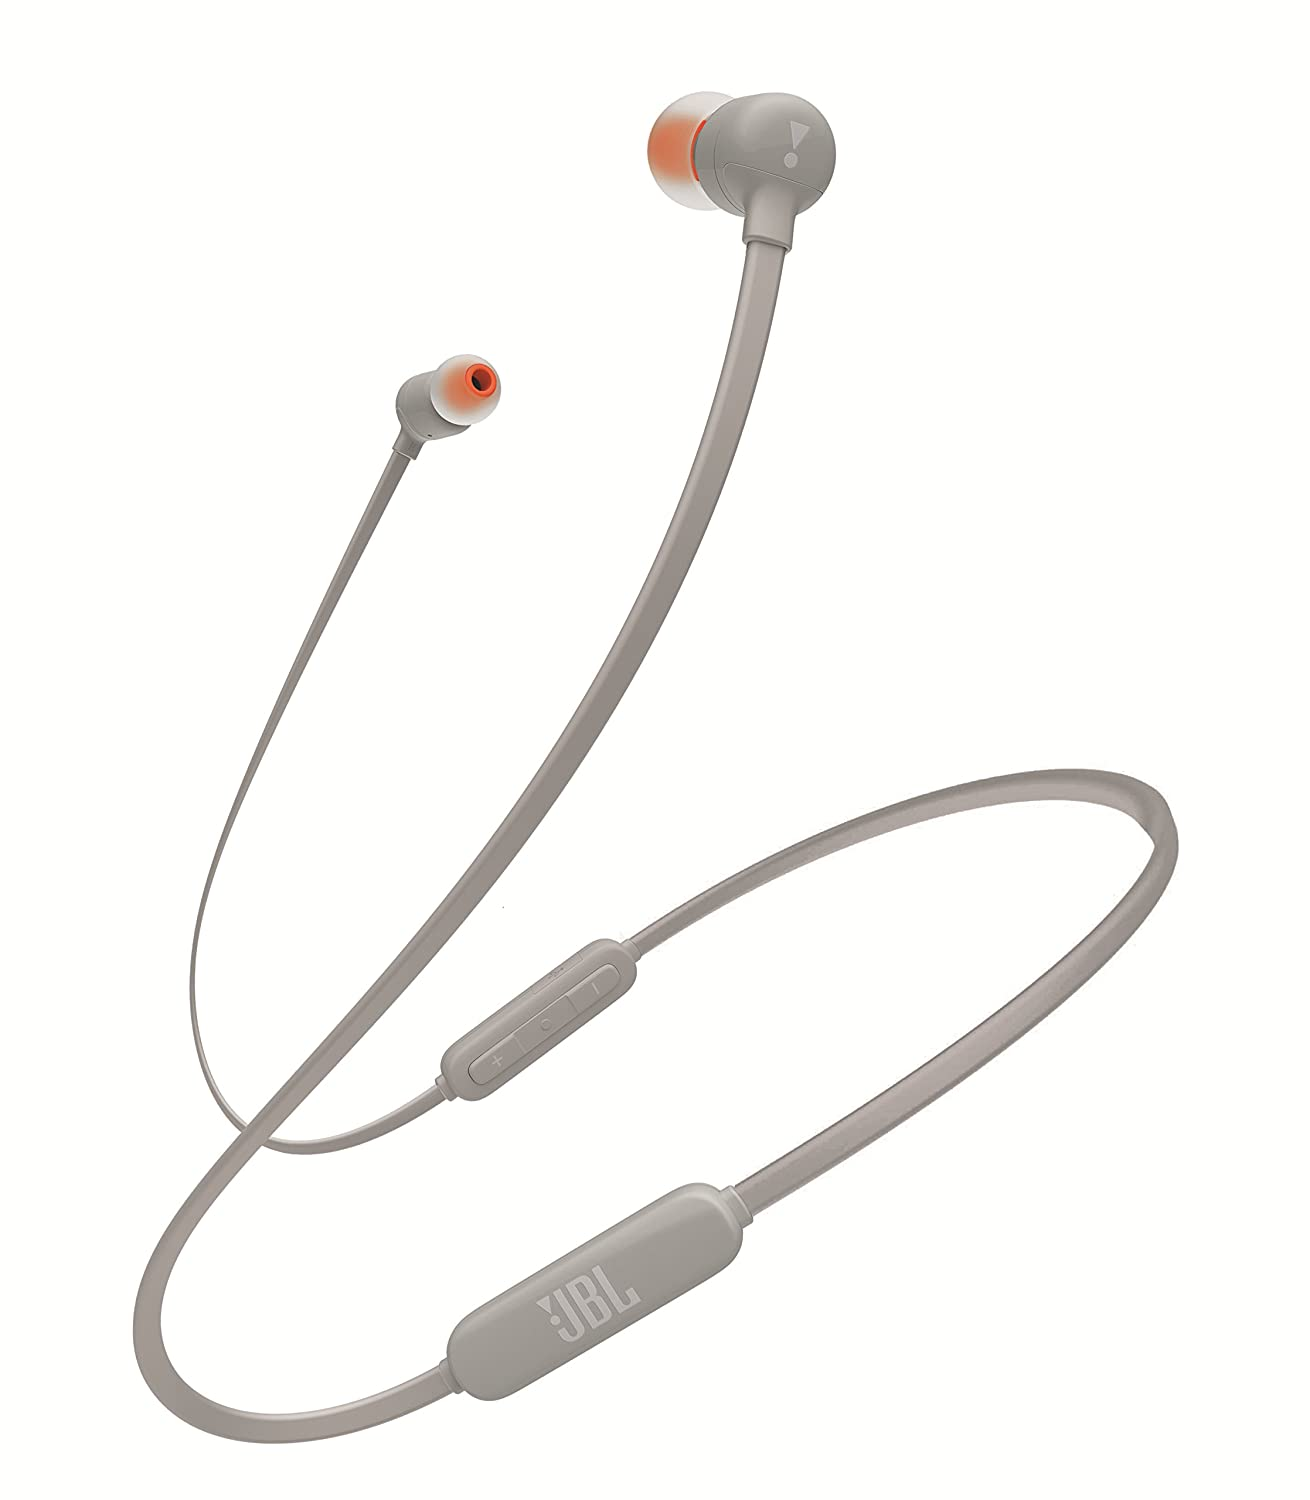 JBL Sealed Dynamic Type Bluetooth Wireless Canal Earphone T110BT-GRY (Gray)【Japan Domestic Genuine Products】 JBLT110BTGRYJN